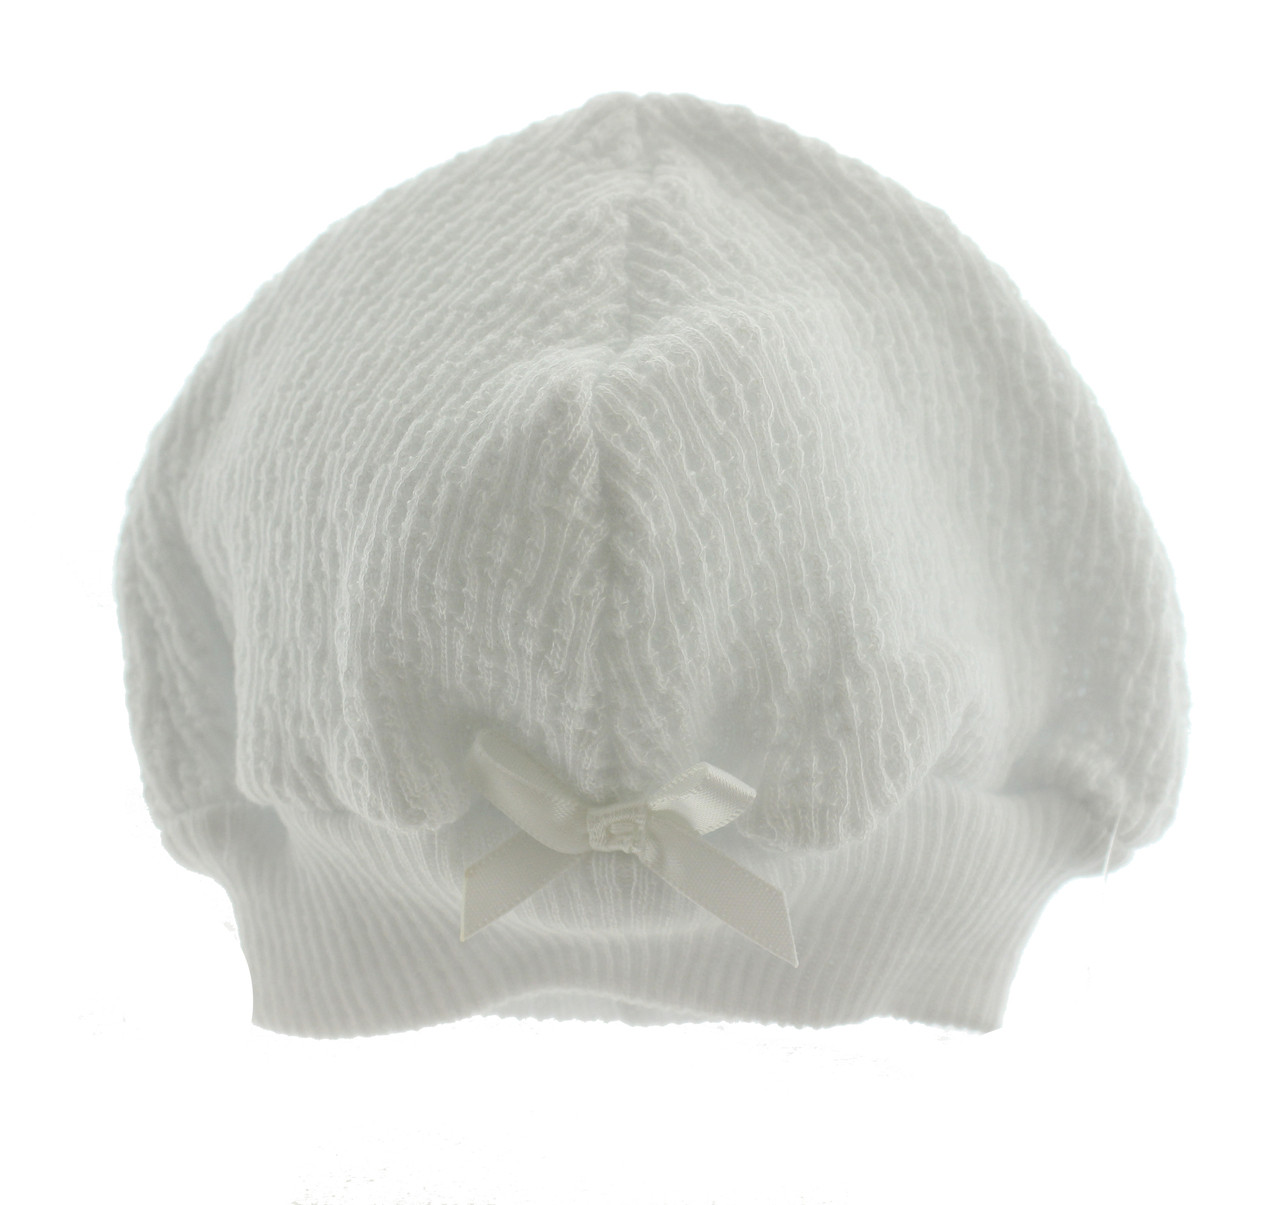 Paty Inc. - White Unisex Baby Beanie Hat with Satin Bow - Hiccups ... 291a7ed2cf6